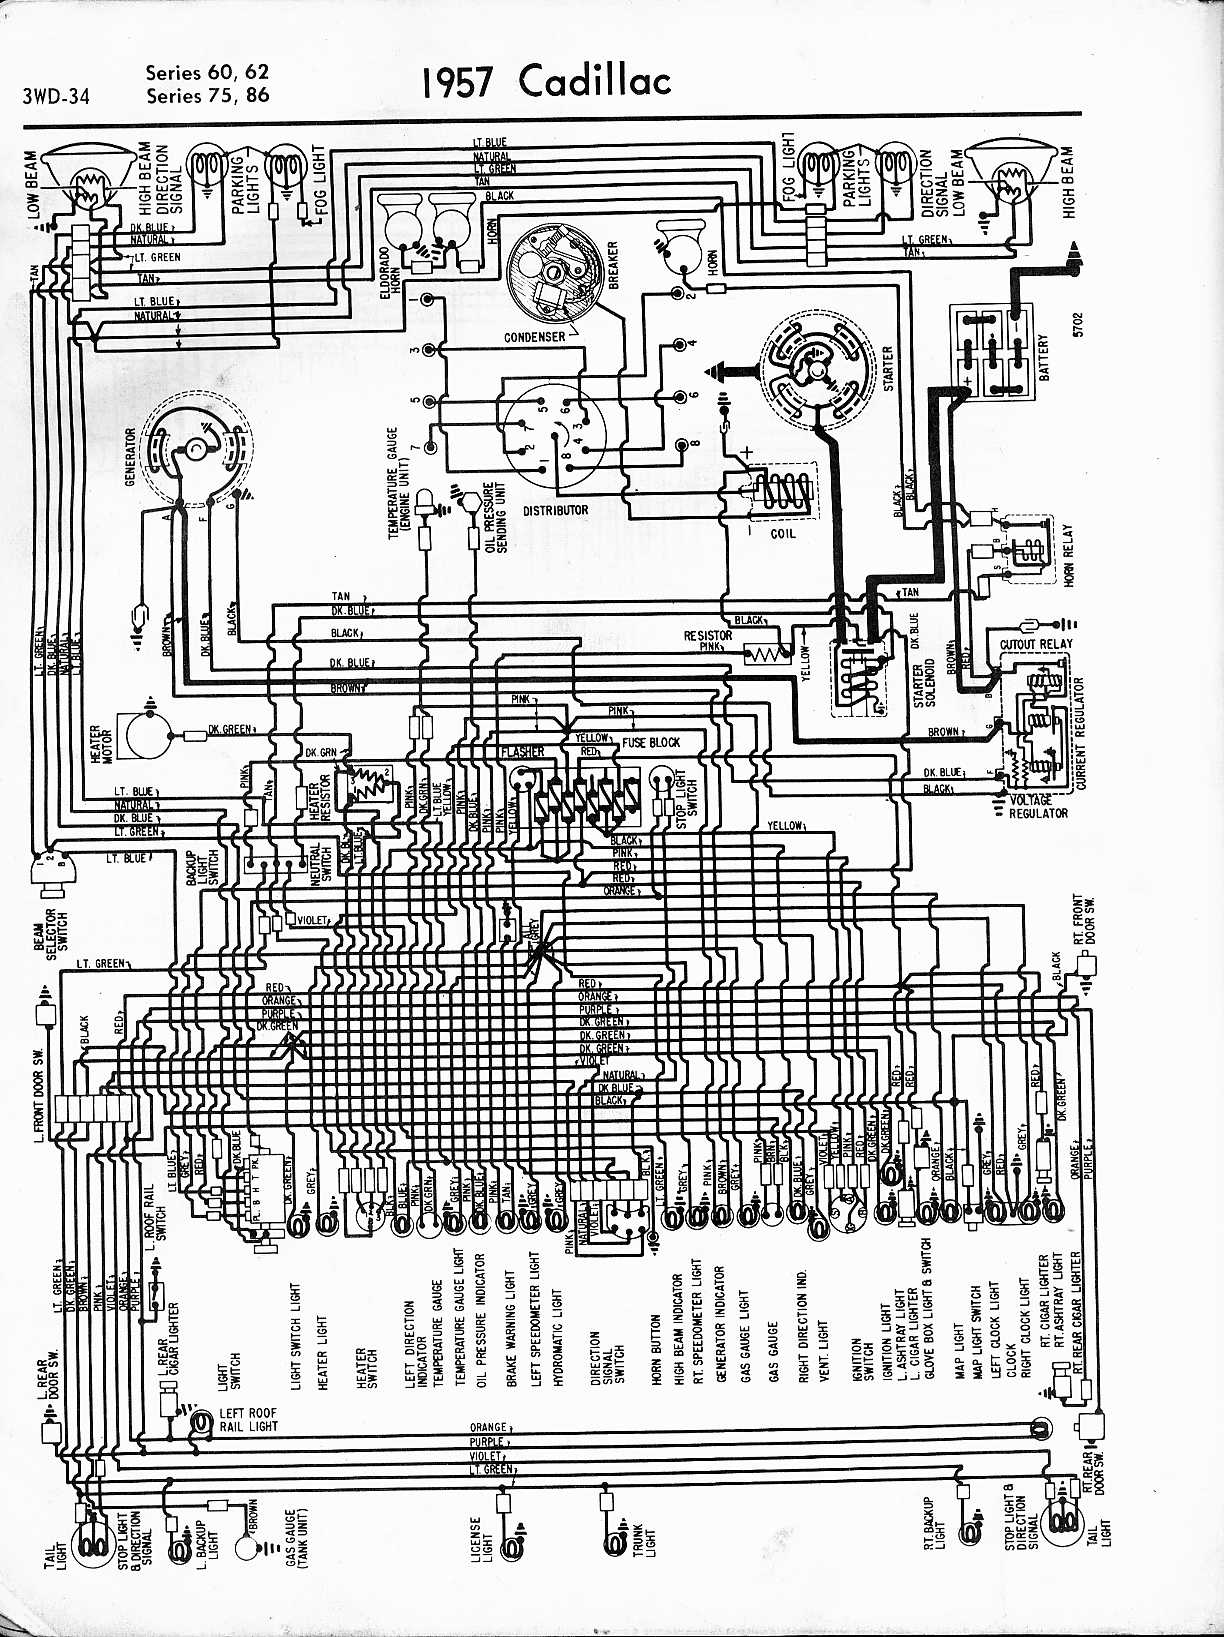 MWireCadi65_3WD 034 cadillac wiring diagrams 1992 cadillac eldorado wiring diagram Rear Defroster Symbol at webbmarketing.co